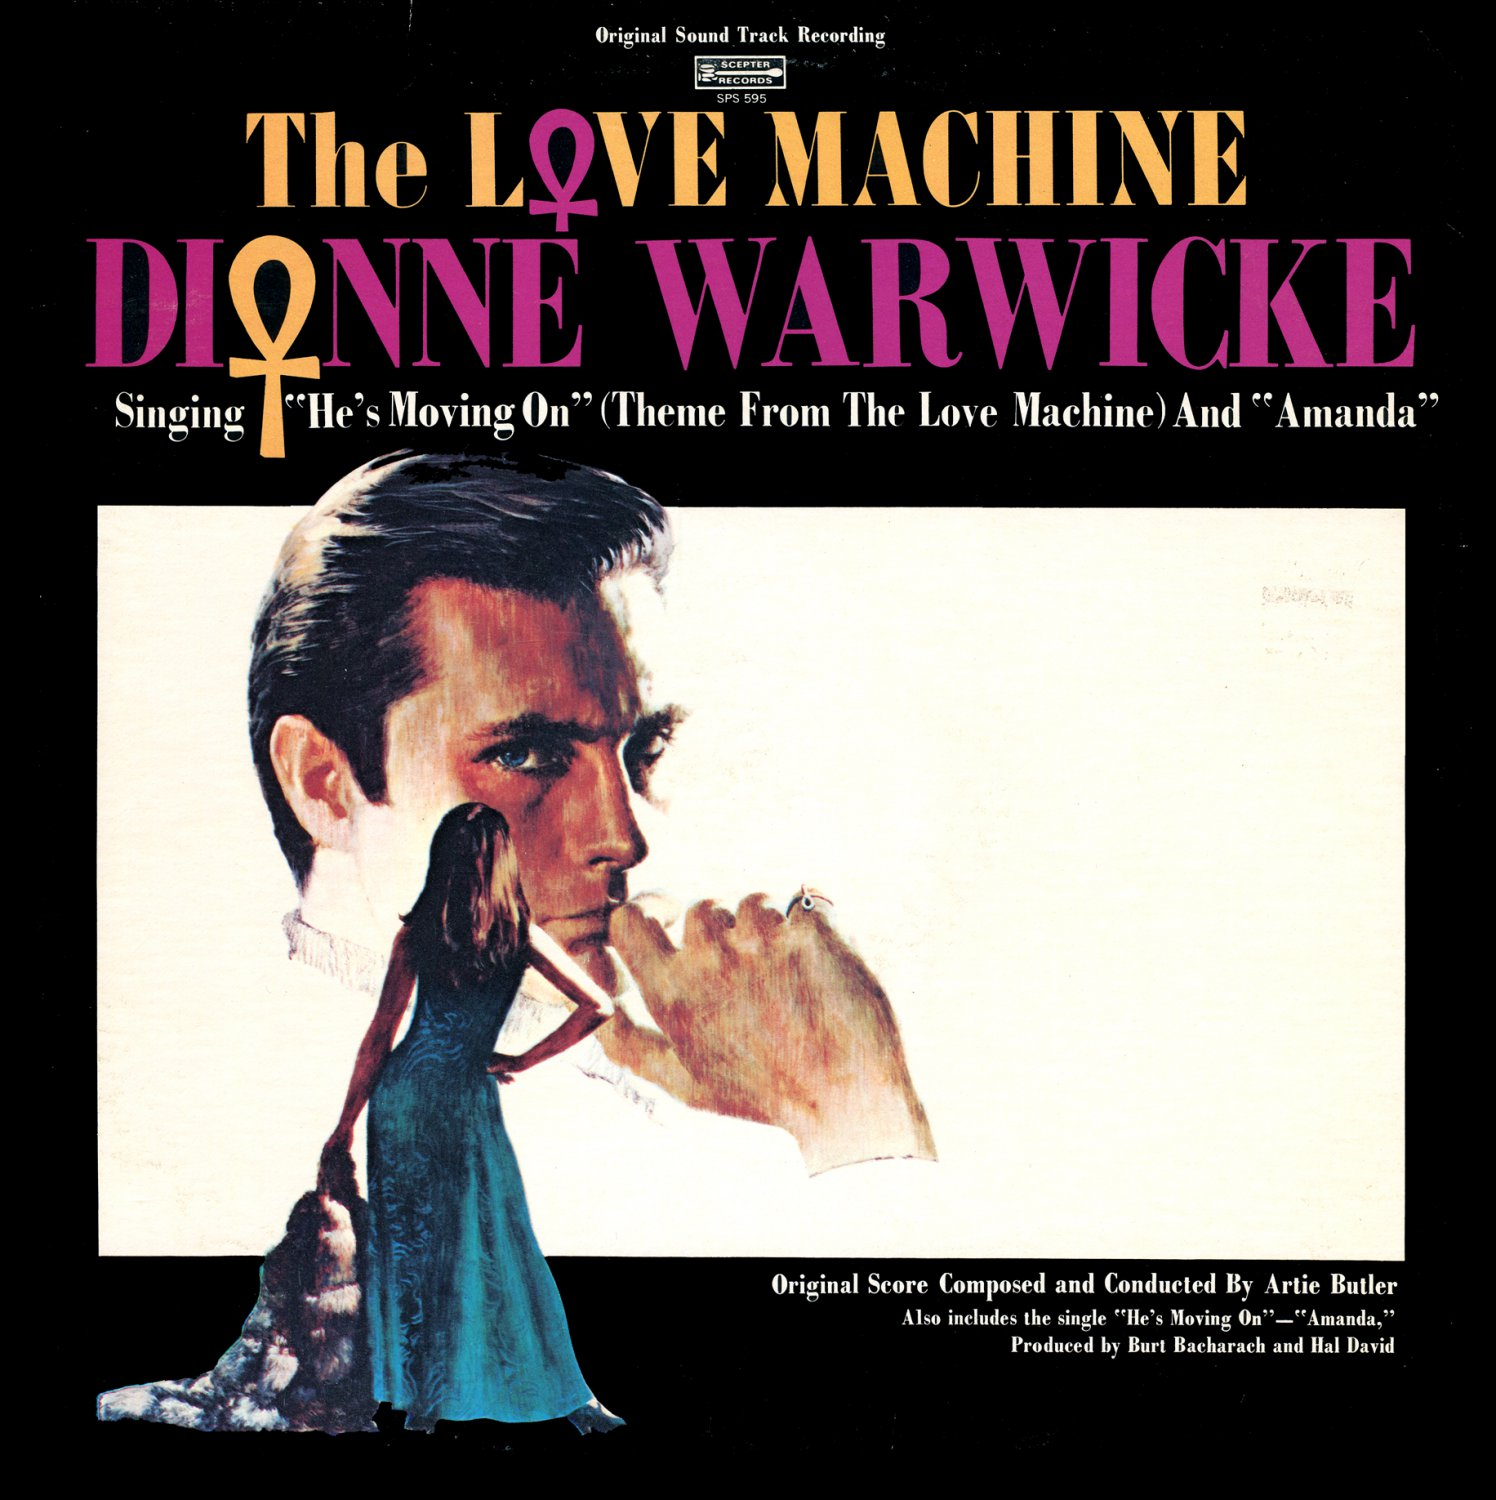 The Love Machine - Original Soundtrack, Dionne Warwicke & Artie Butler OST LP/CD